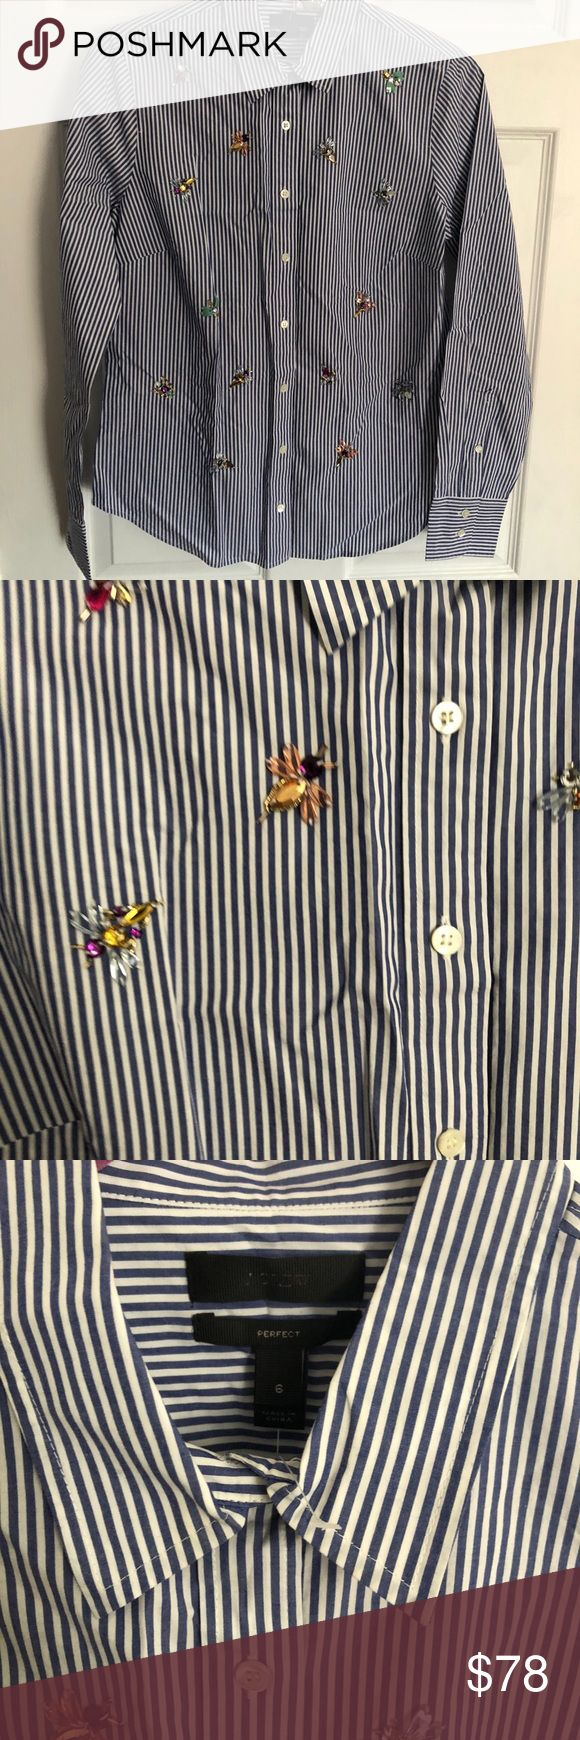 J. Crew Perfect shirt with bee embellishment Our perfect shirt features precisely placed darts for a slimming, waist-defining fit that's more tailored and polished than our boy shirt. This one features hand-embellished bees for a quirky, perfectly J.Crew take. For more ways to wear it, watch our Style Hacks video now.  Cotton. Long roll-up sleeves. Functional buttons at cuffs. Button placket. Dry clean. Import. Item F4992. J. Crew Tops Button Down Shirts